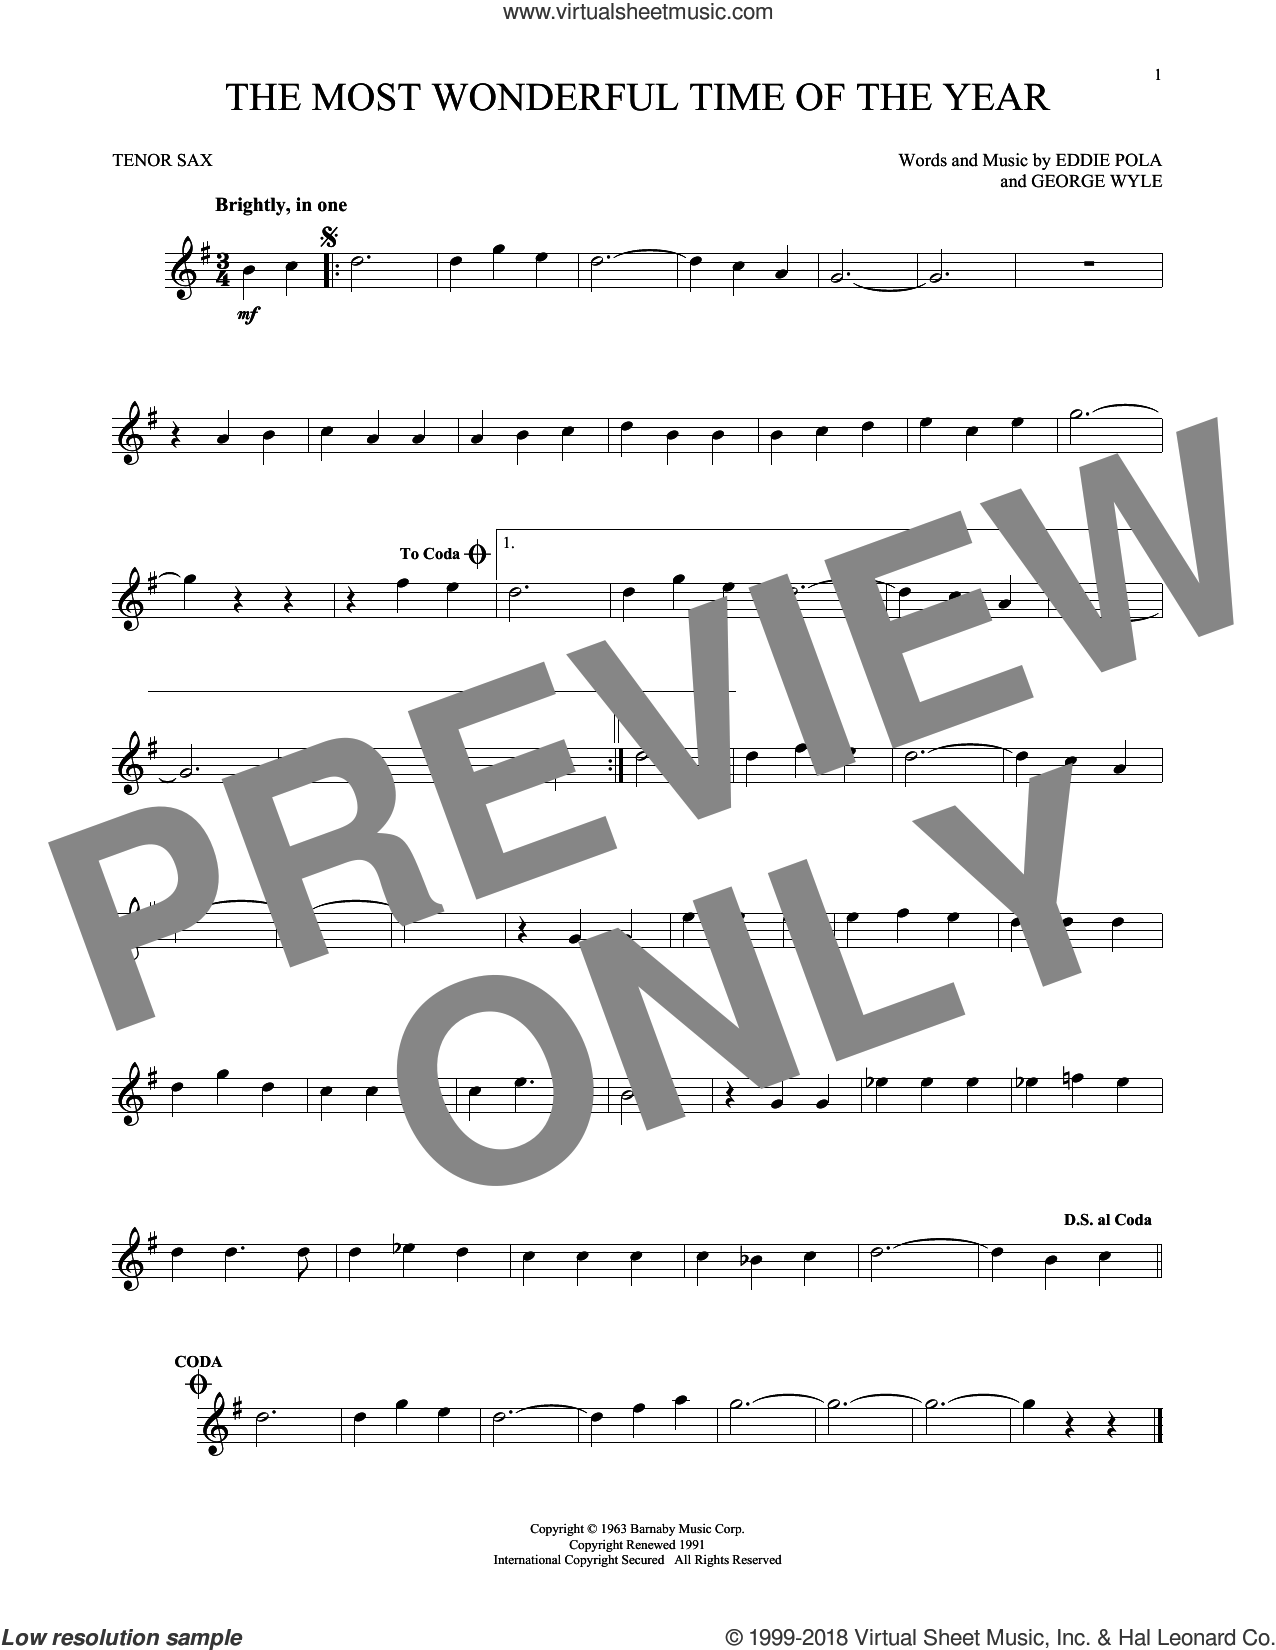 The Most Wonderful Time Of The Year sheet music for tenor saxophone solo by George Wyle, Andy Williams, Eddie Pola and George Wyle & Eddie Pola, intermediate skill level